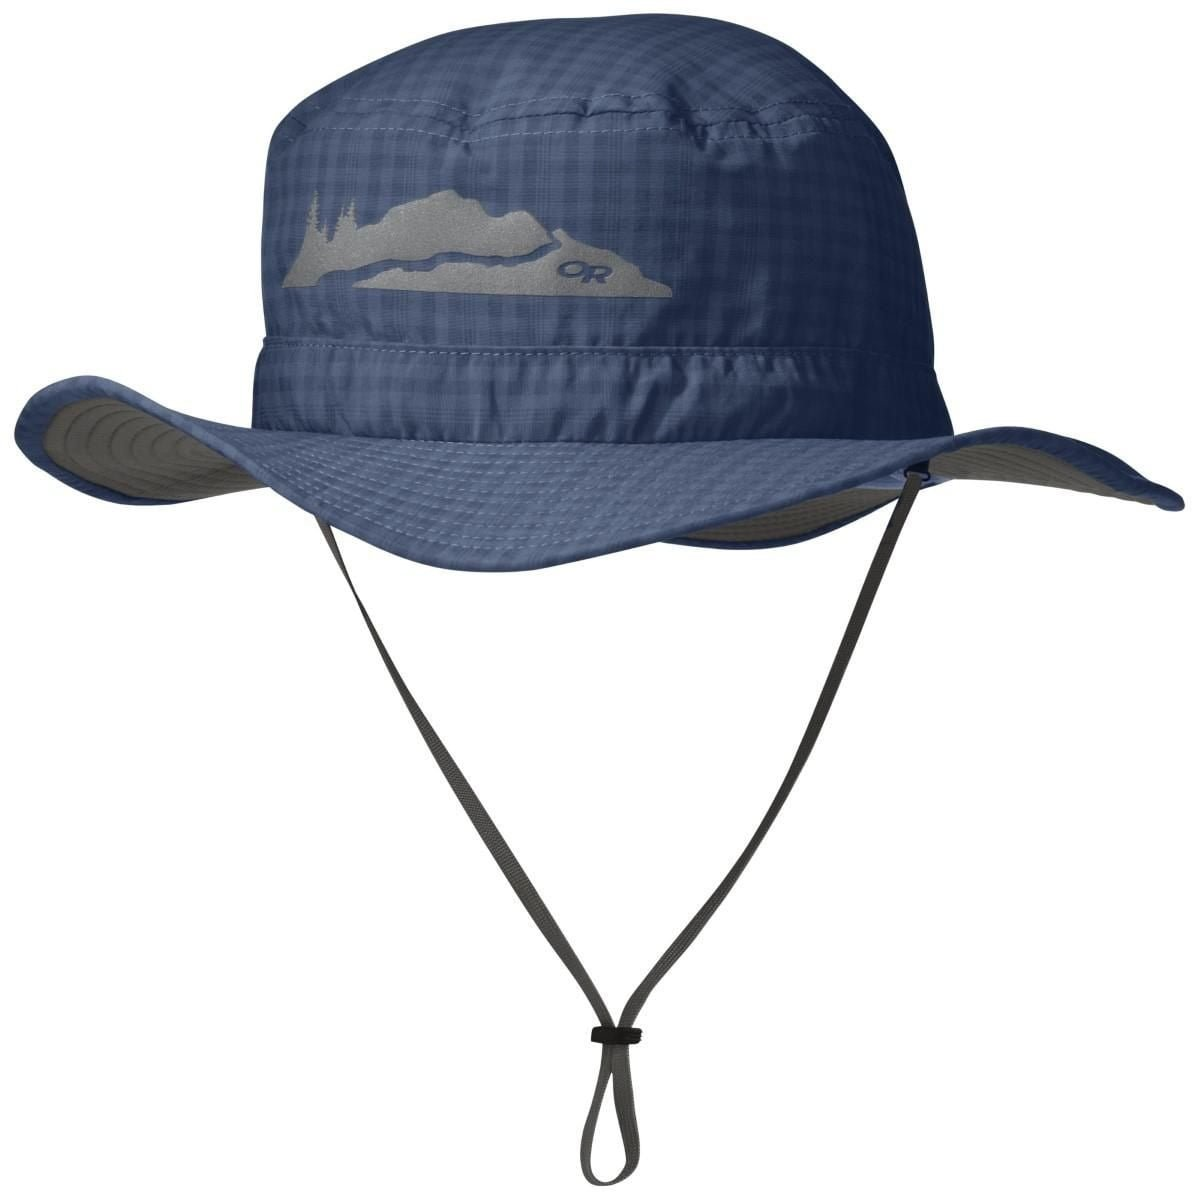 OR Helios Youth Sun Hat